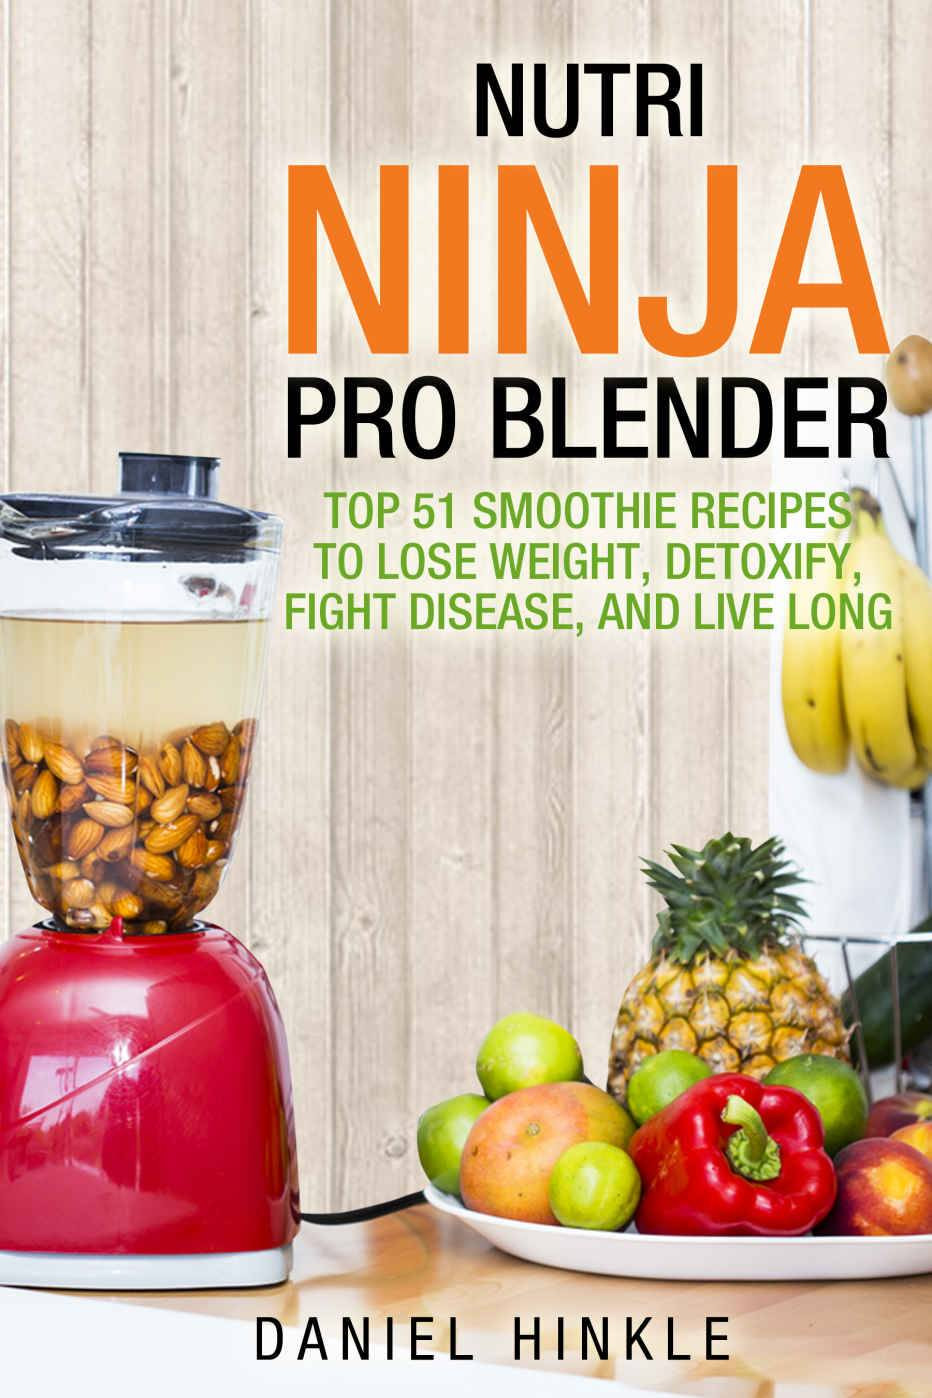 Ninja Smoothie Recipes For Weight Loss  Nutri Ninja Pro Blender Top 51 Smoothie Recipes to Lose